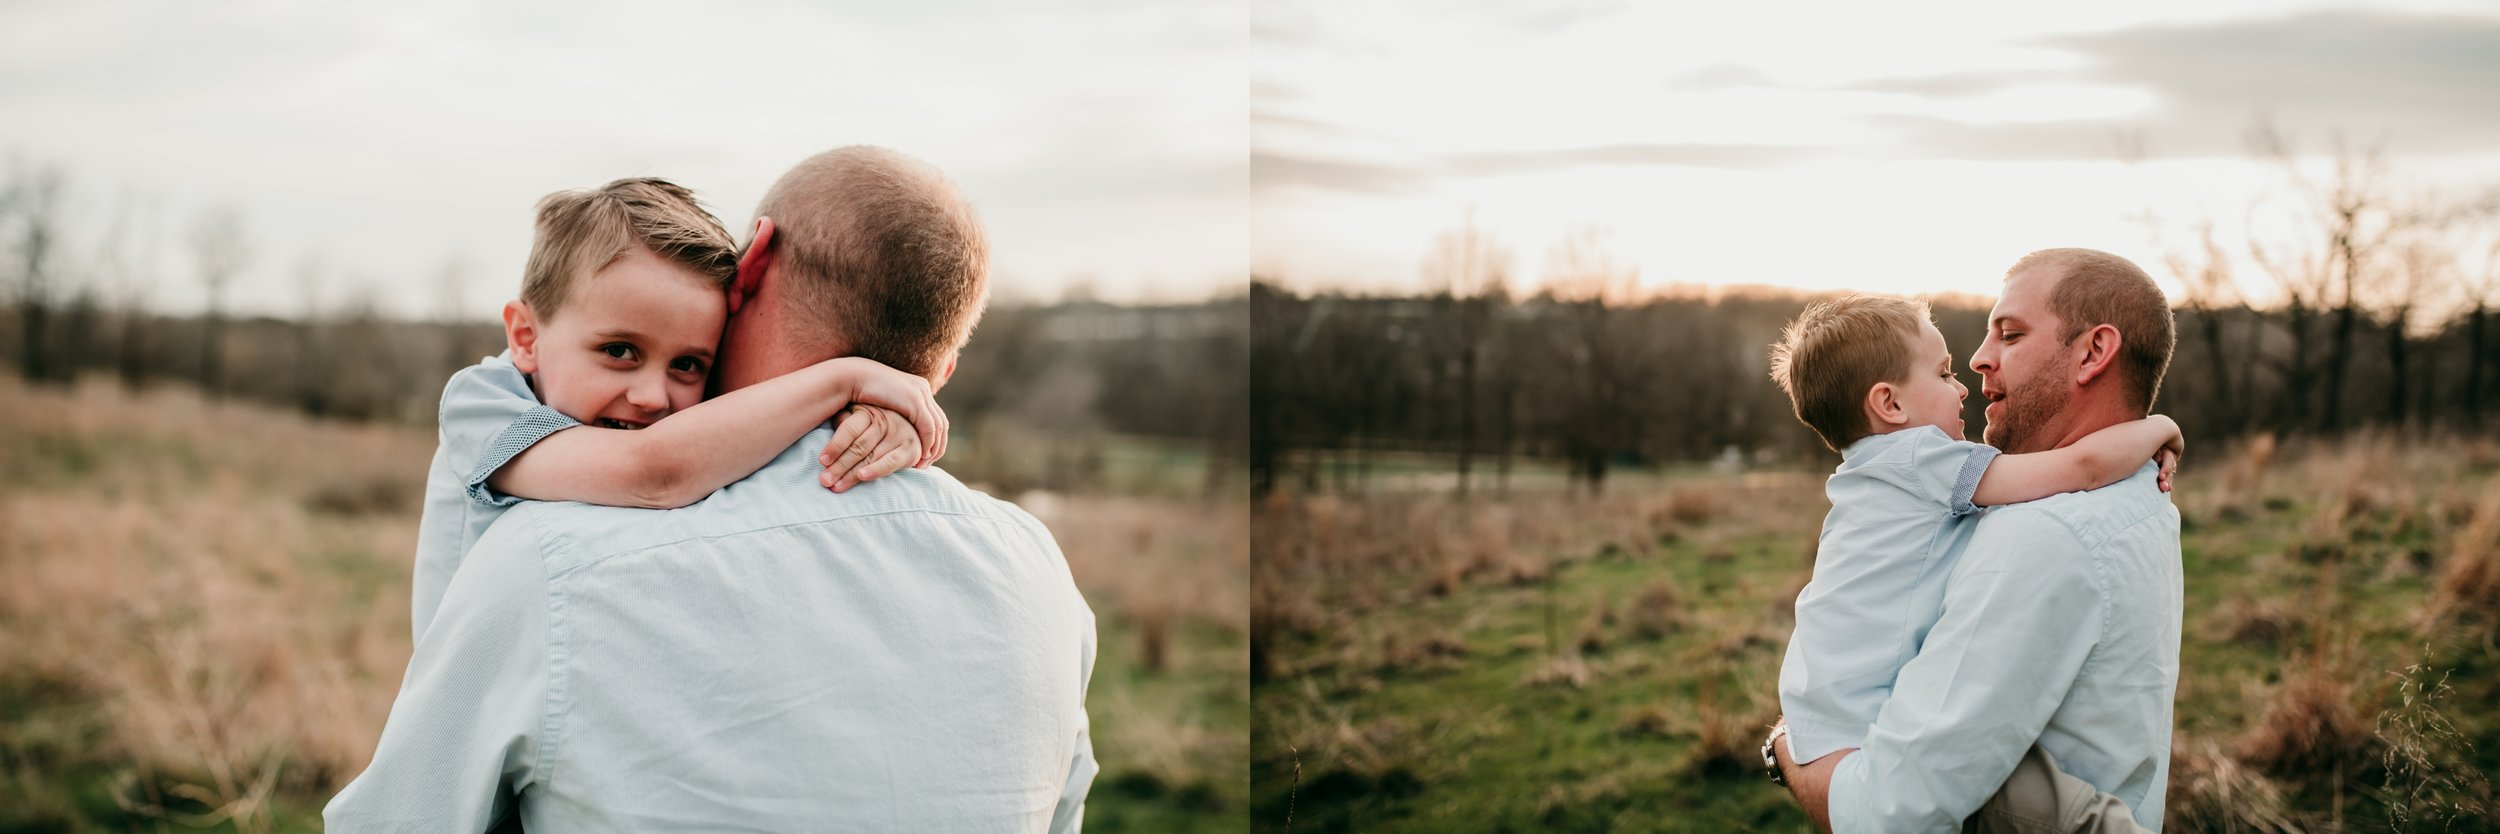 son hugging dad lifestyle photographer